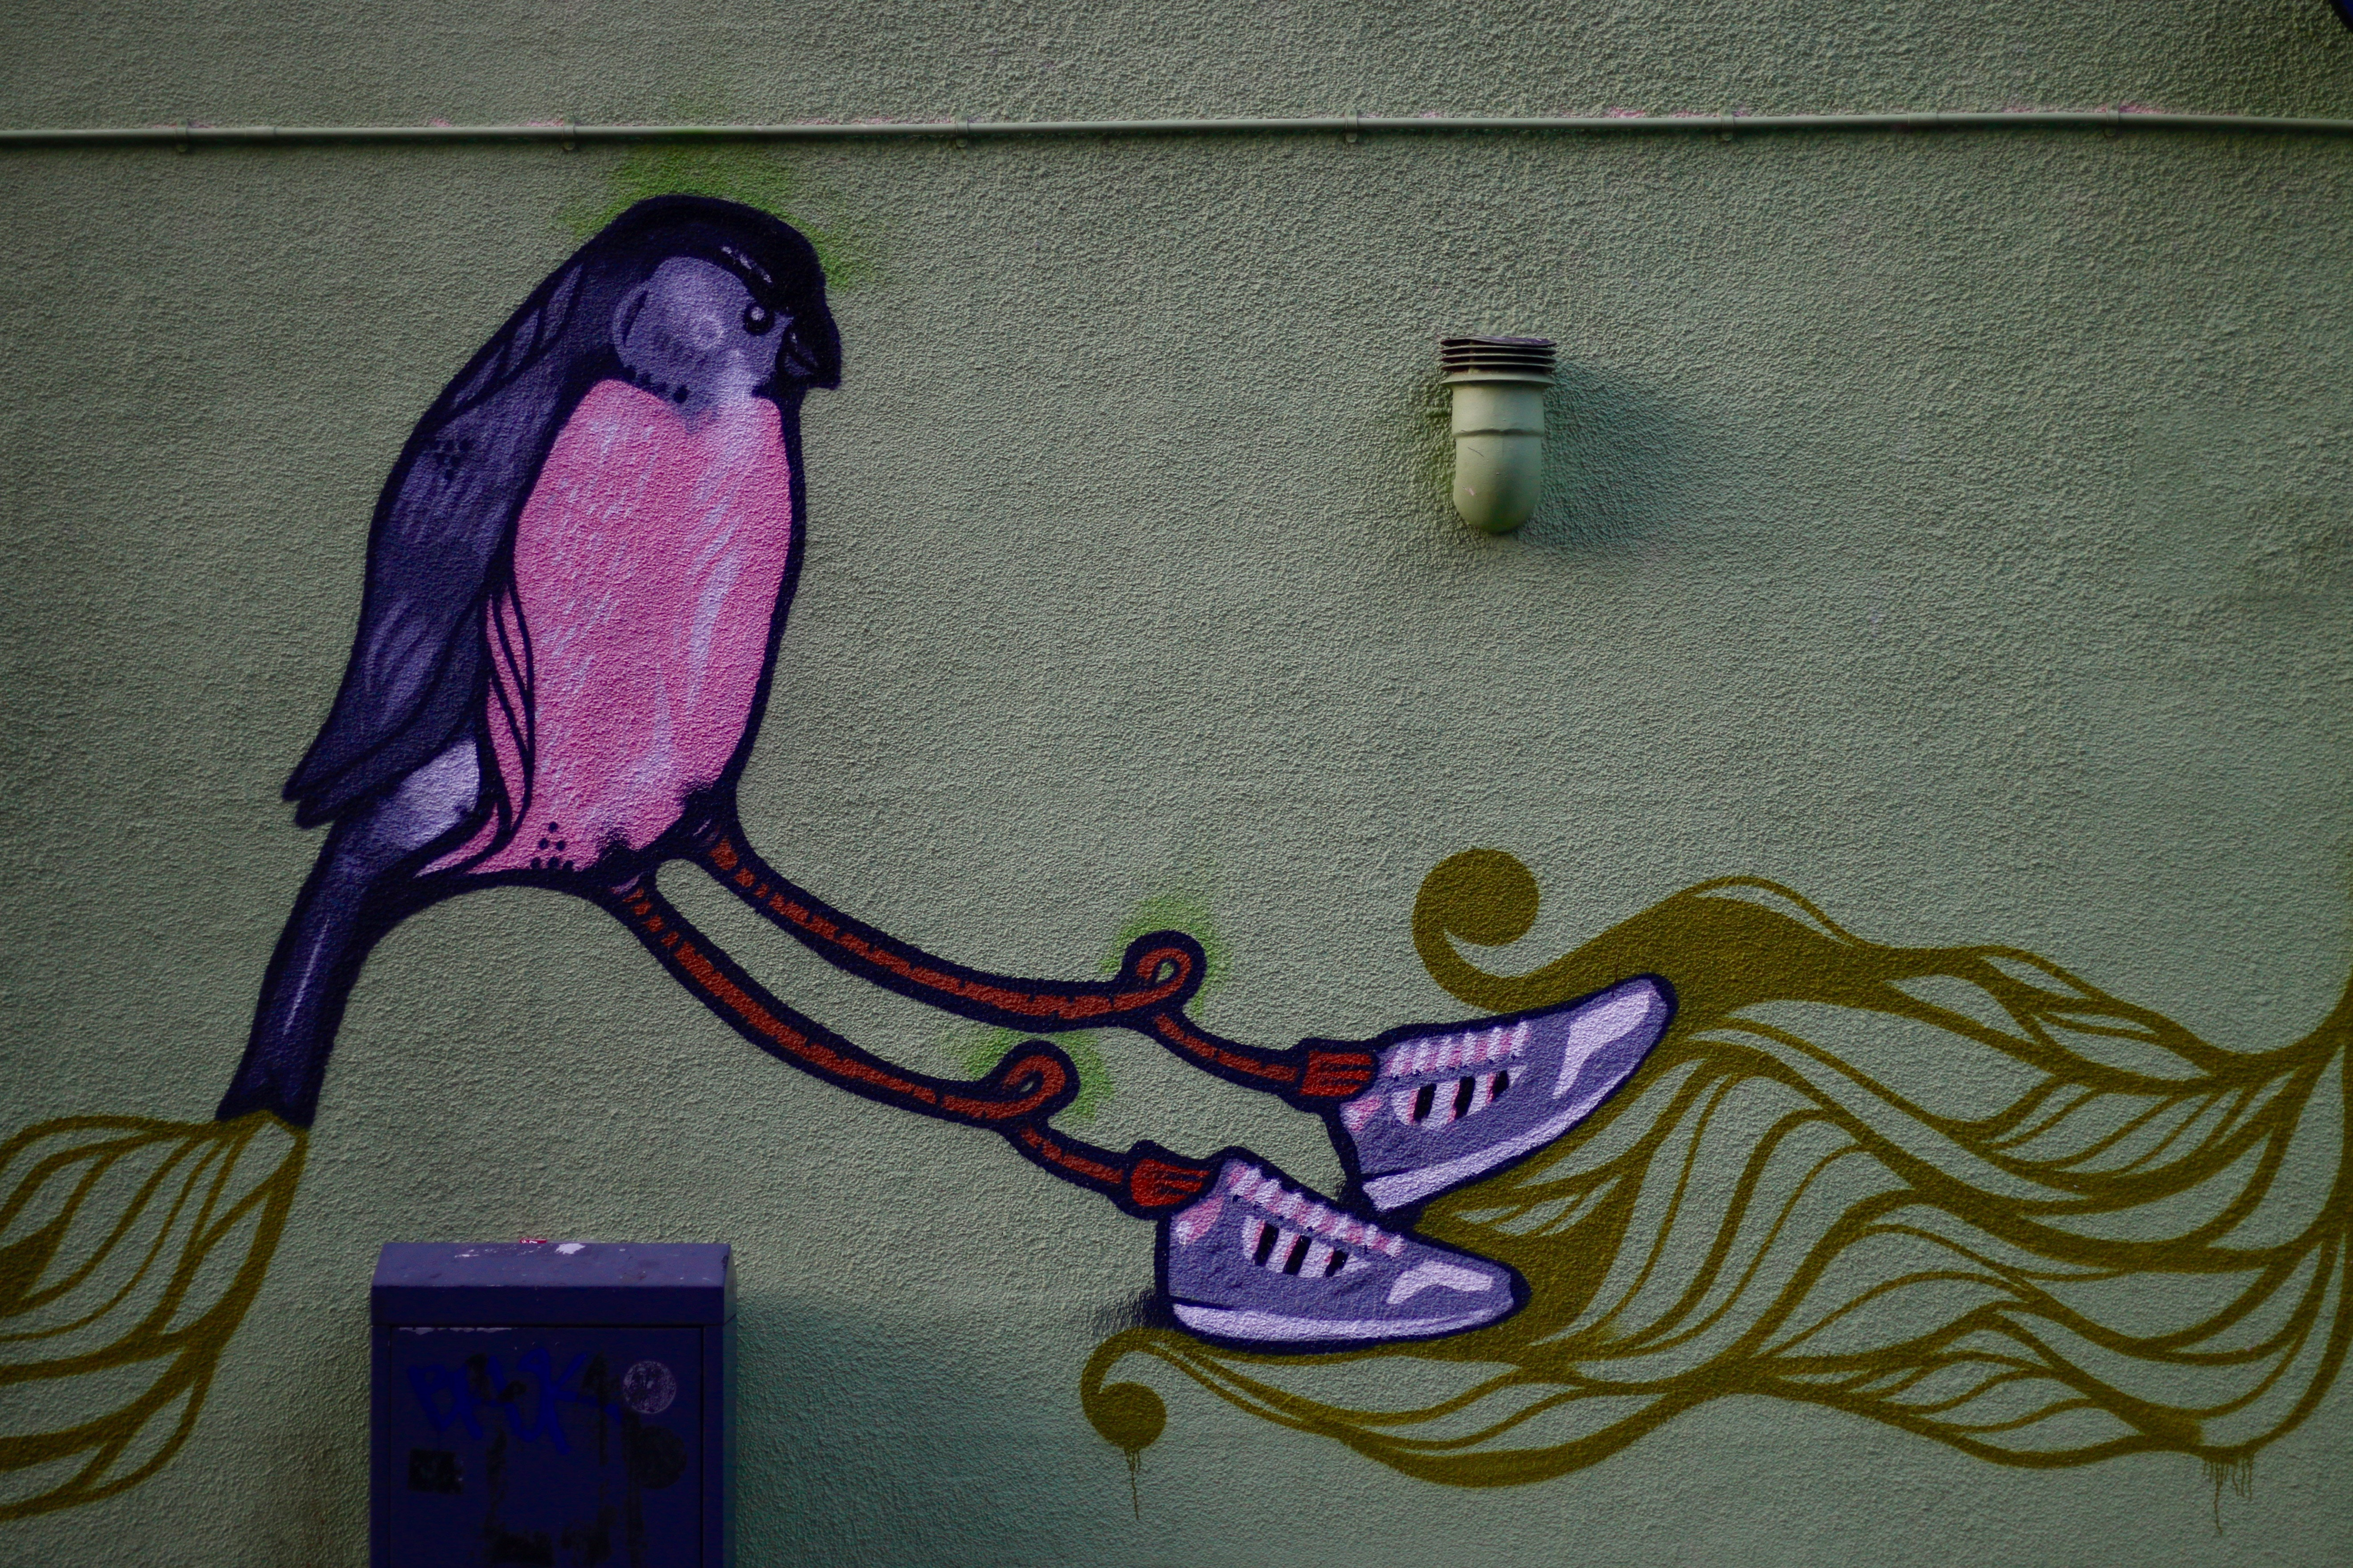 bird with shoes